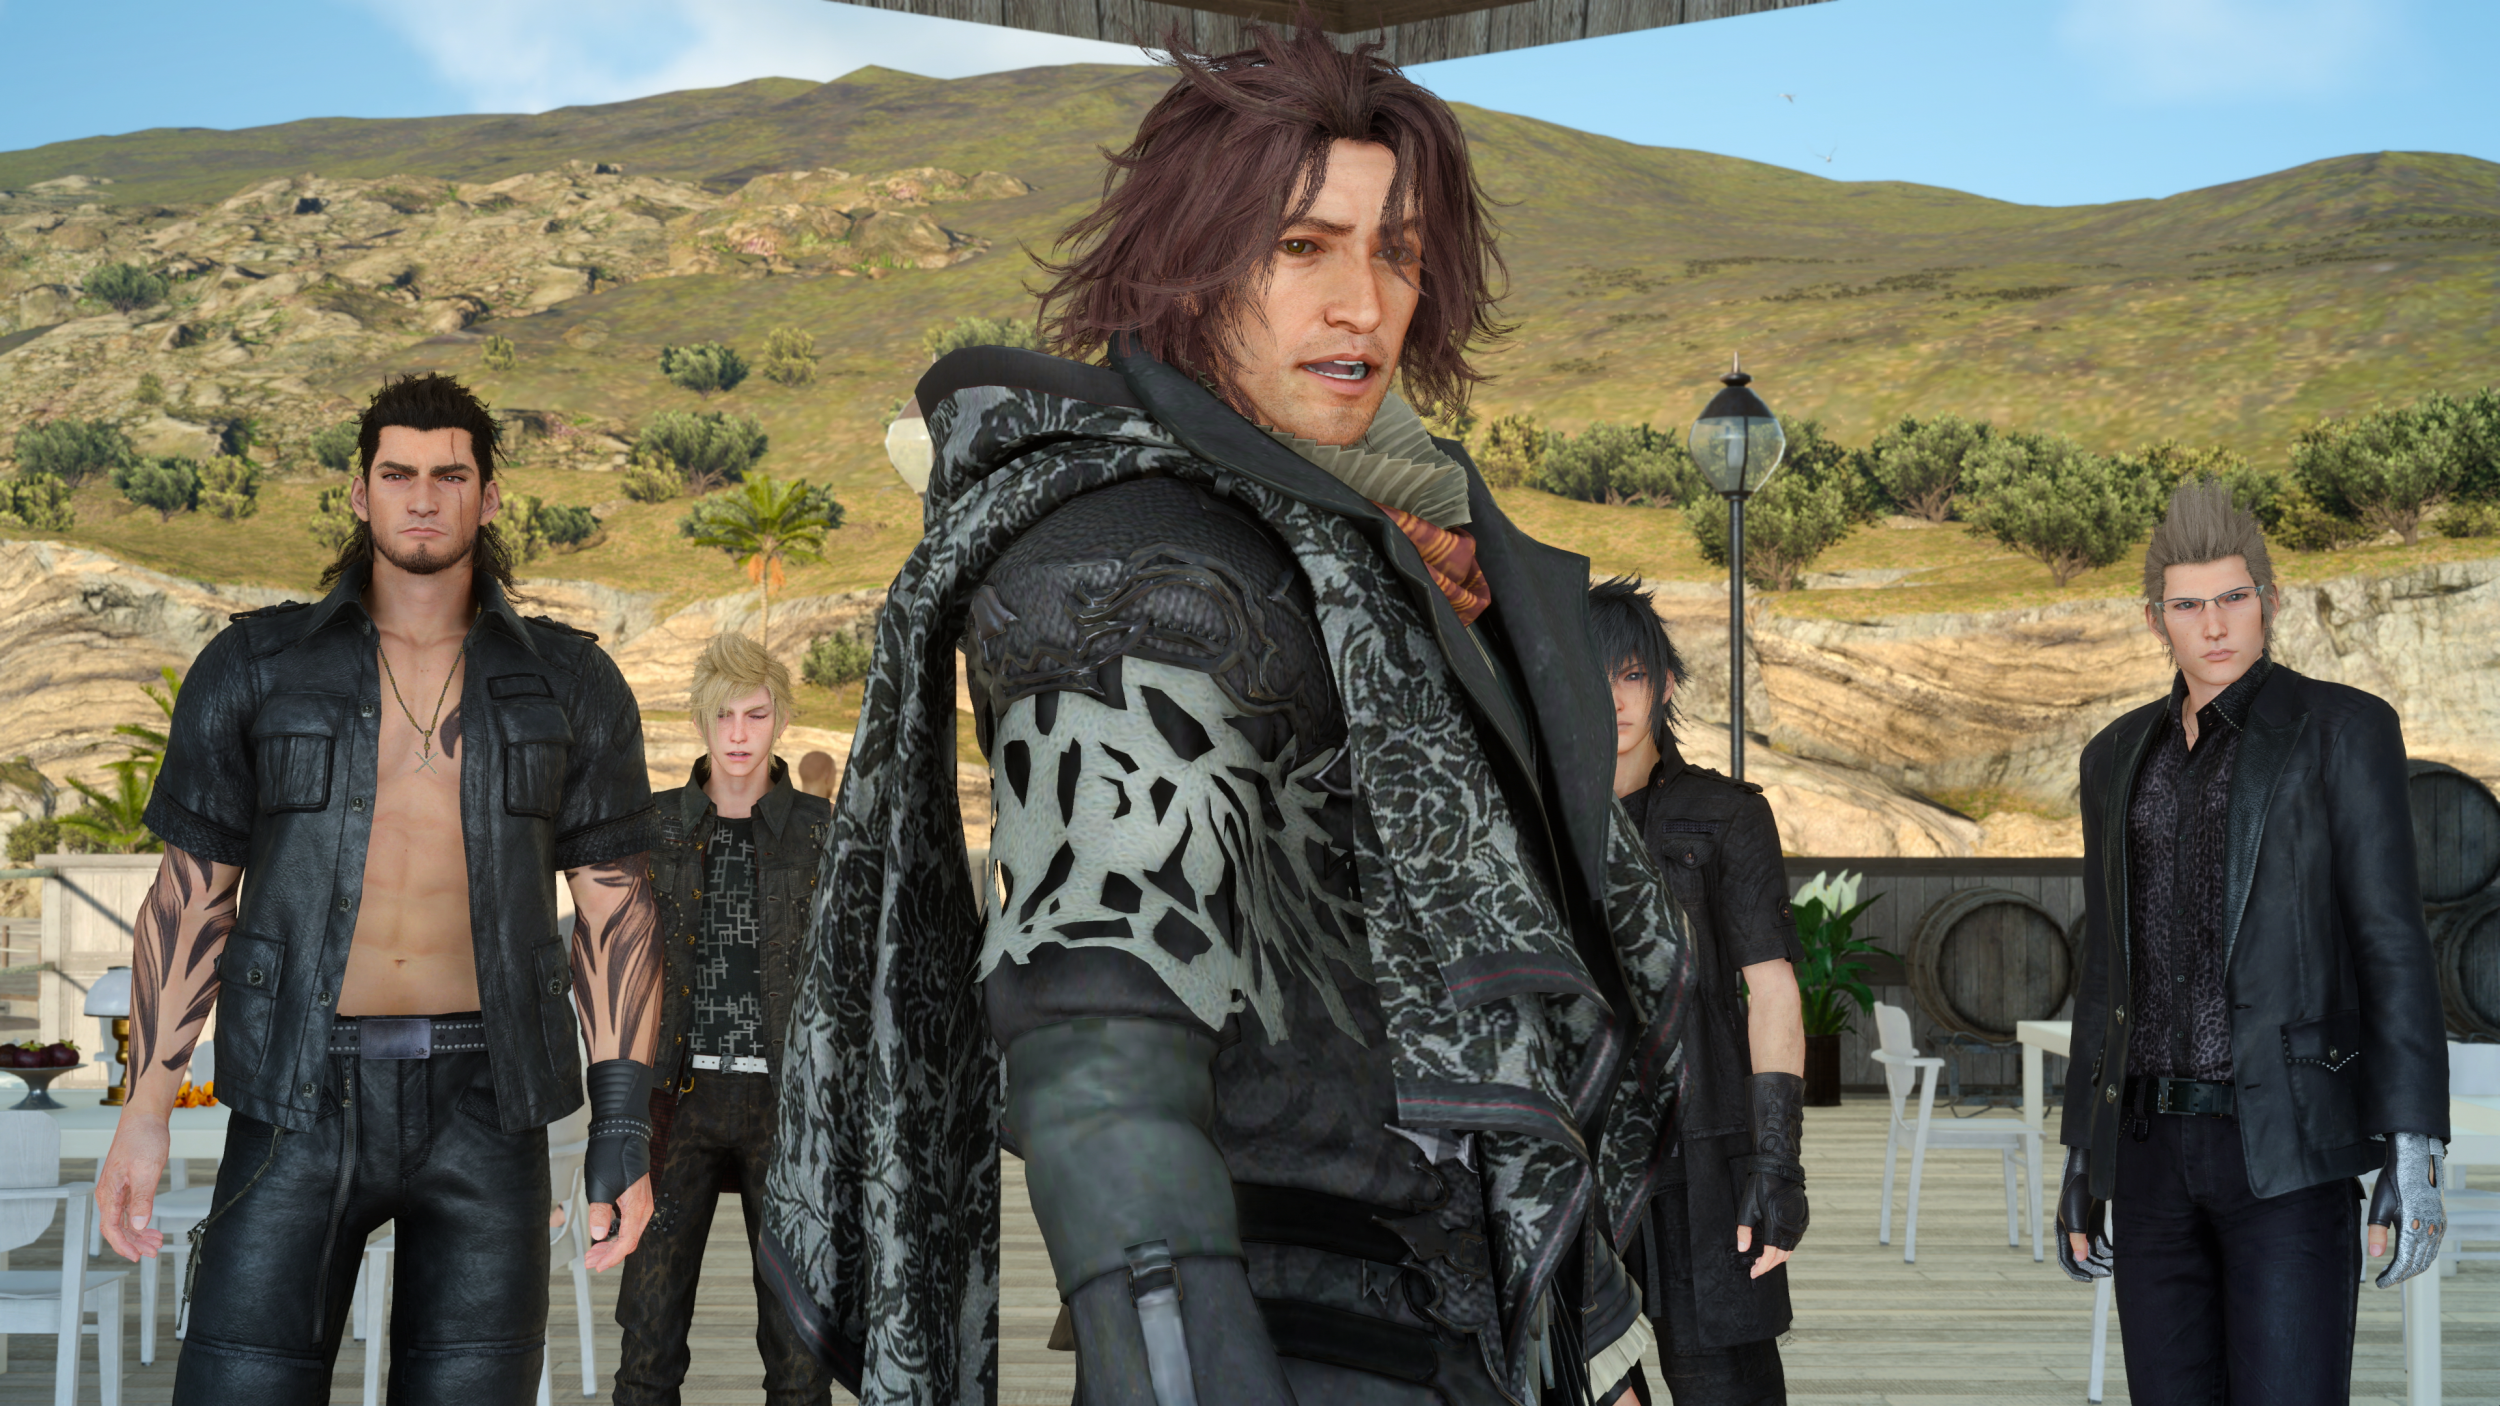 Final Fantasy XV' EXP Guide: Level up Fast Using These